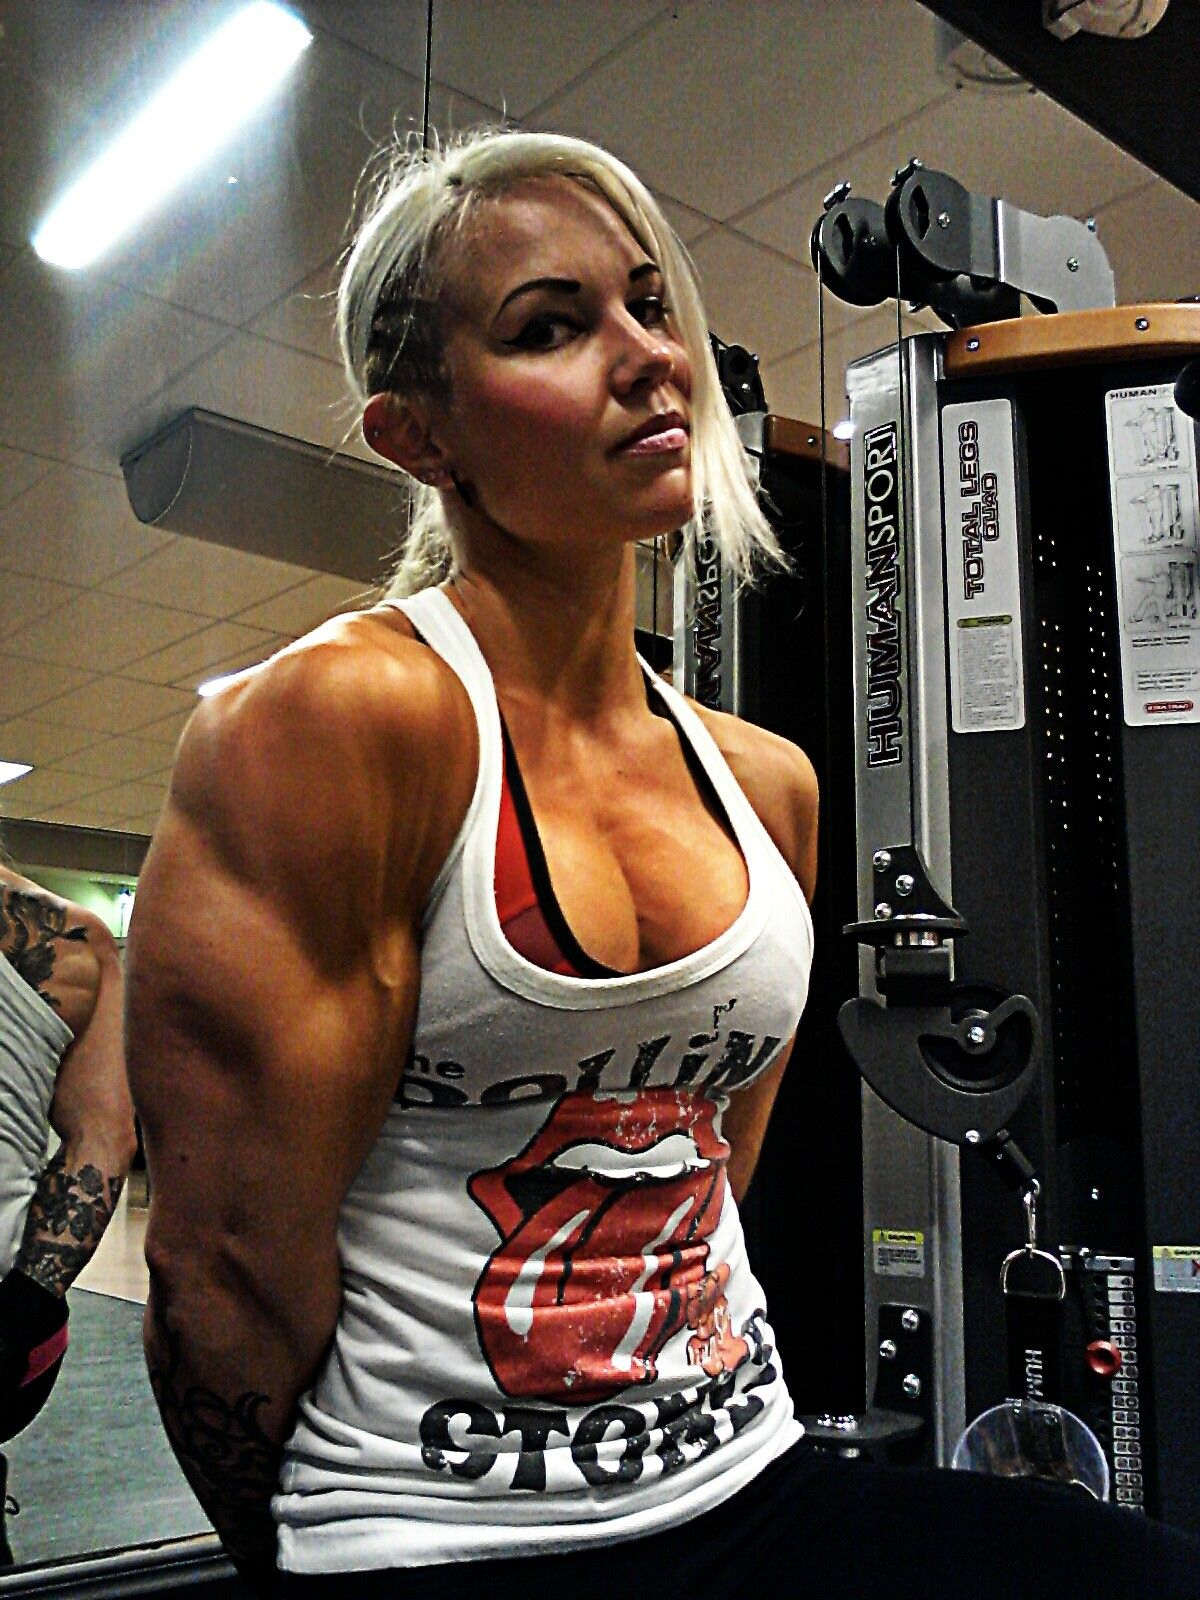 Via girlswithmuscle.com